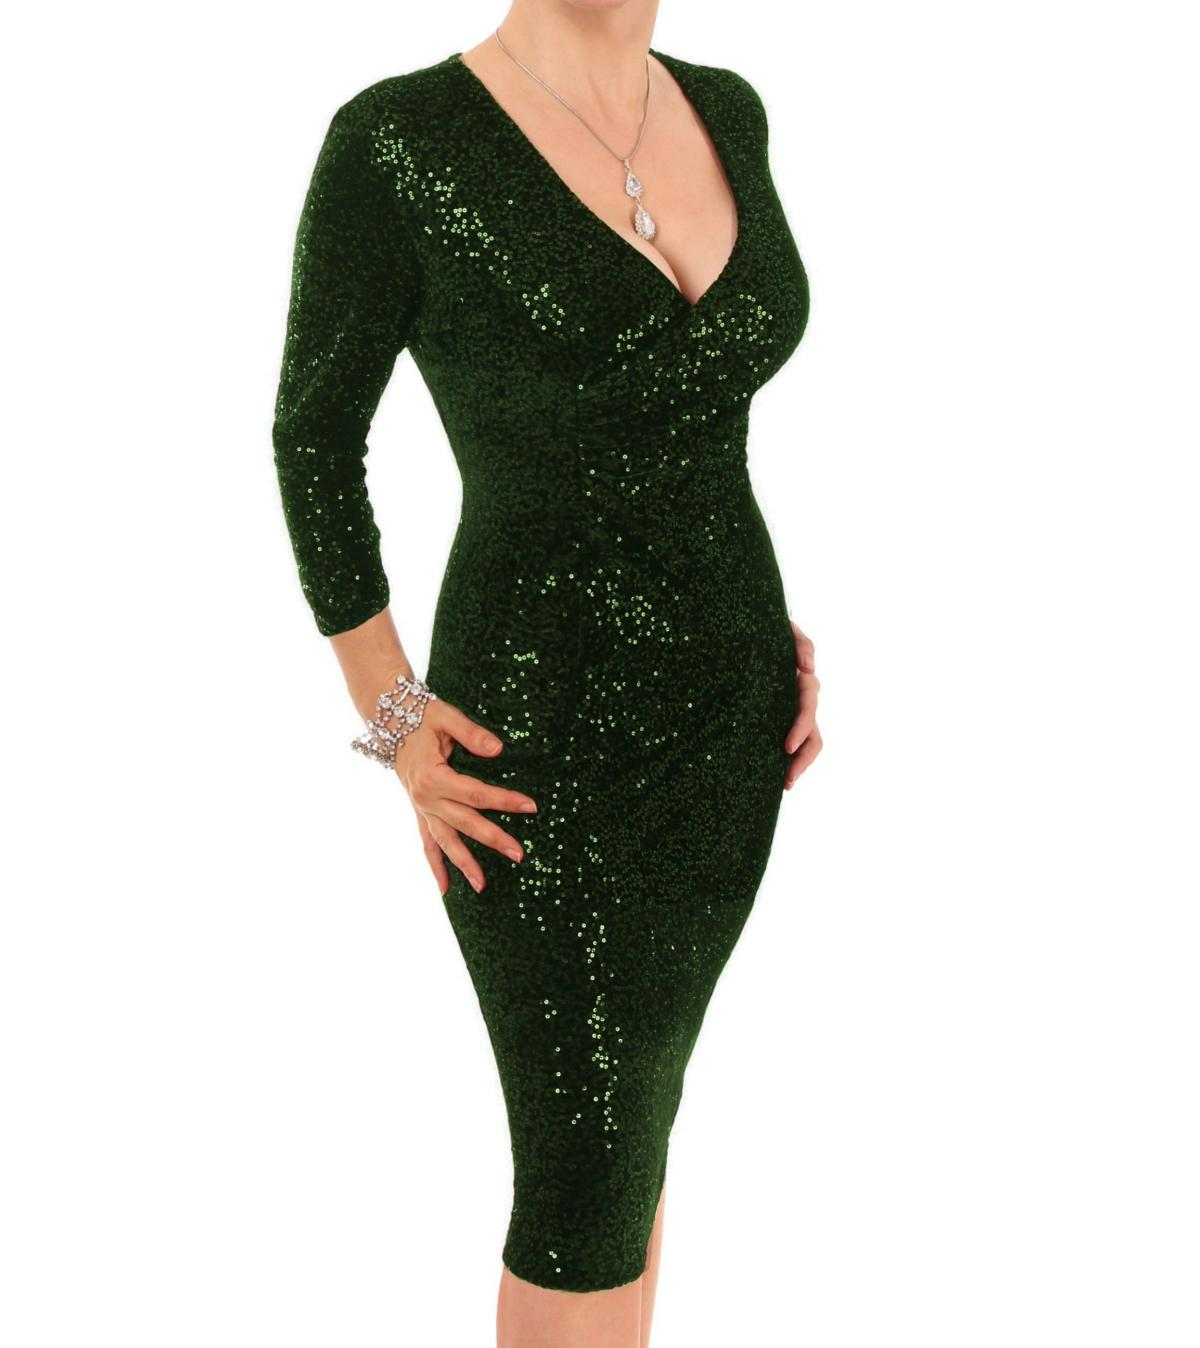 Bottle Green Velour Sequin Knee Length Dress